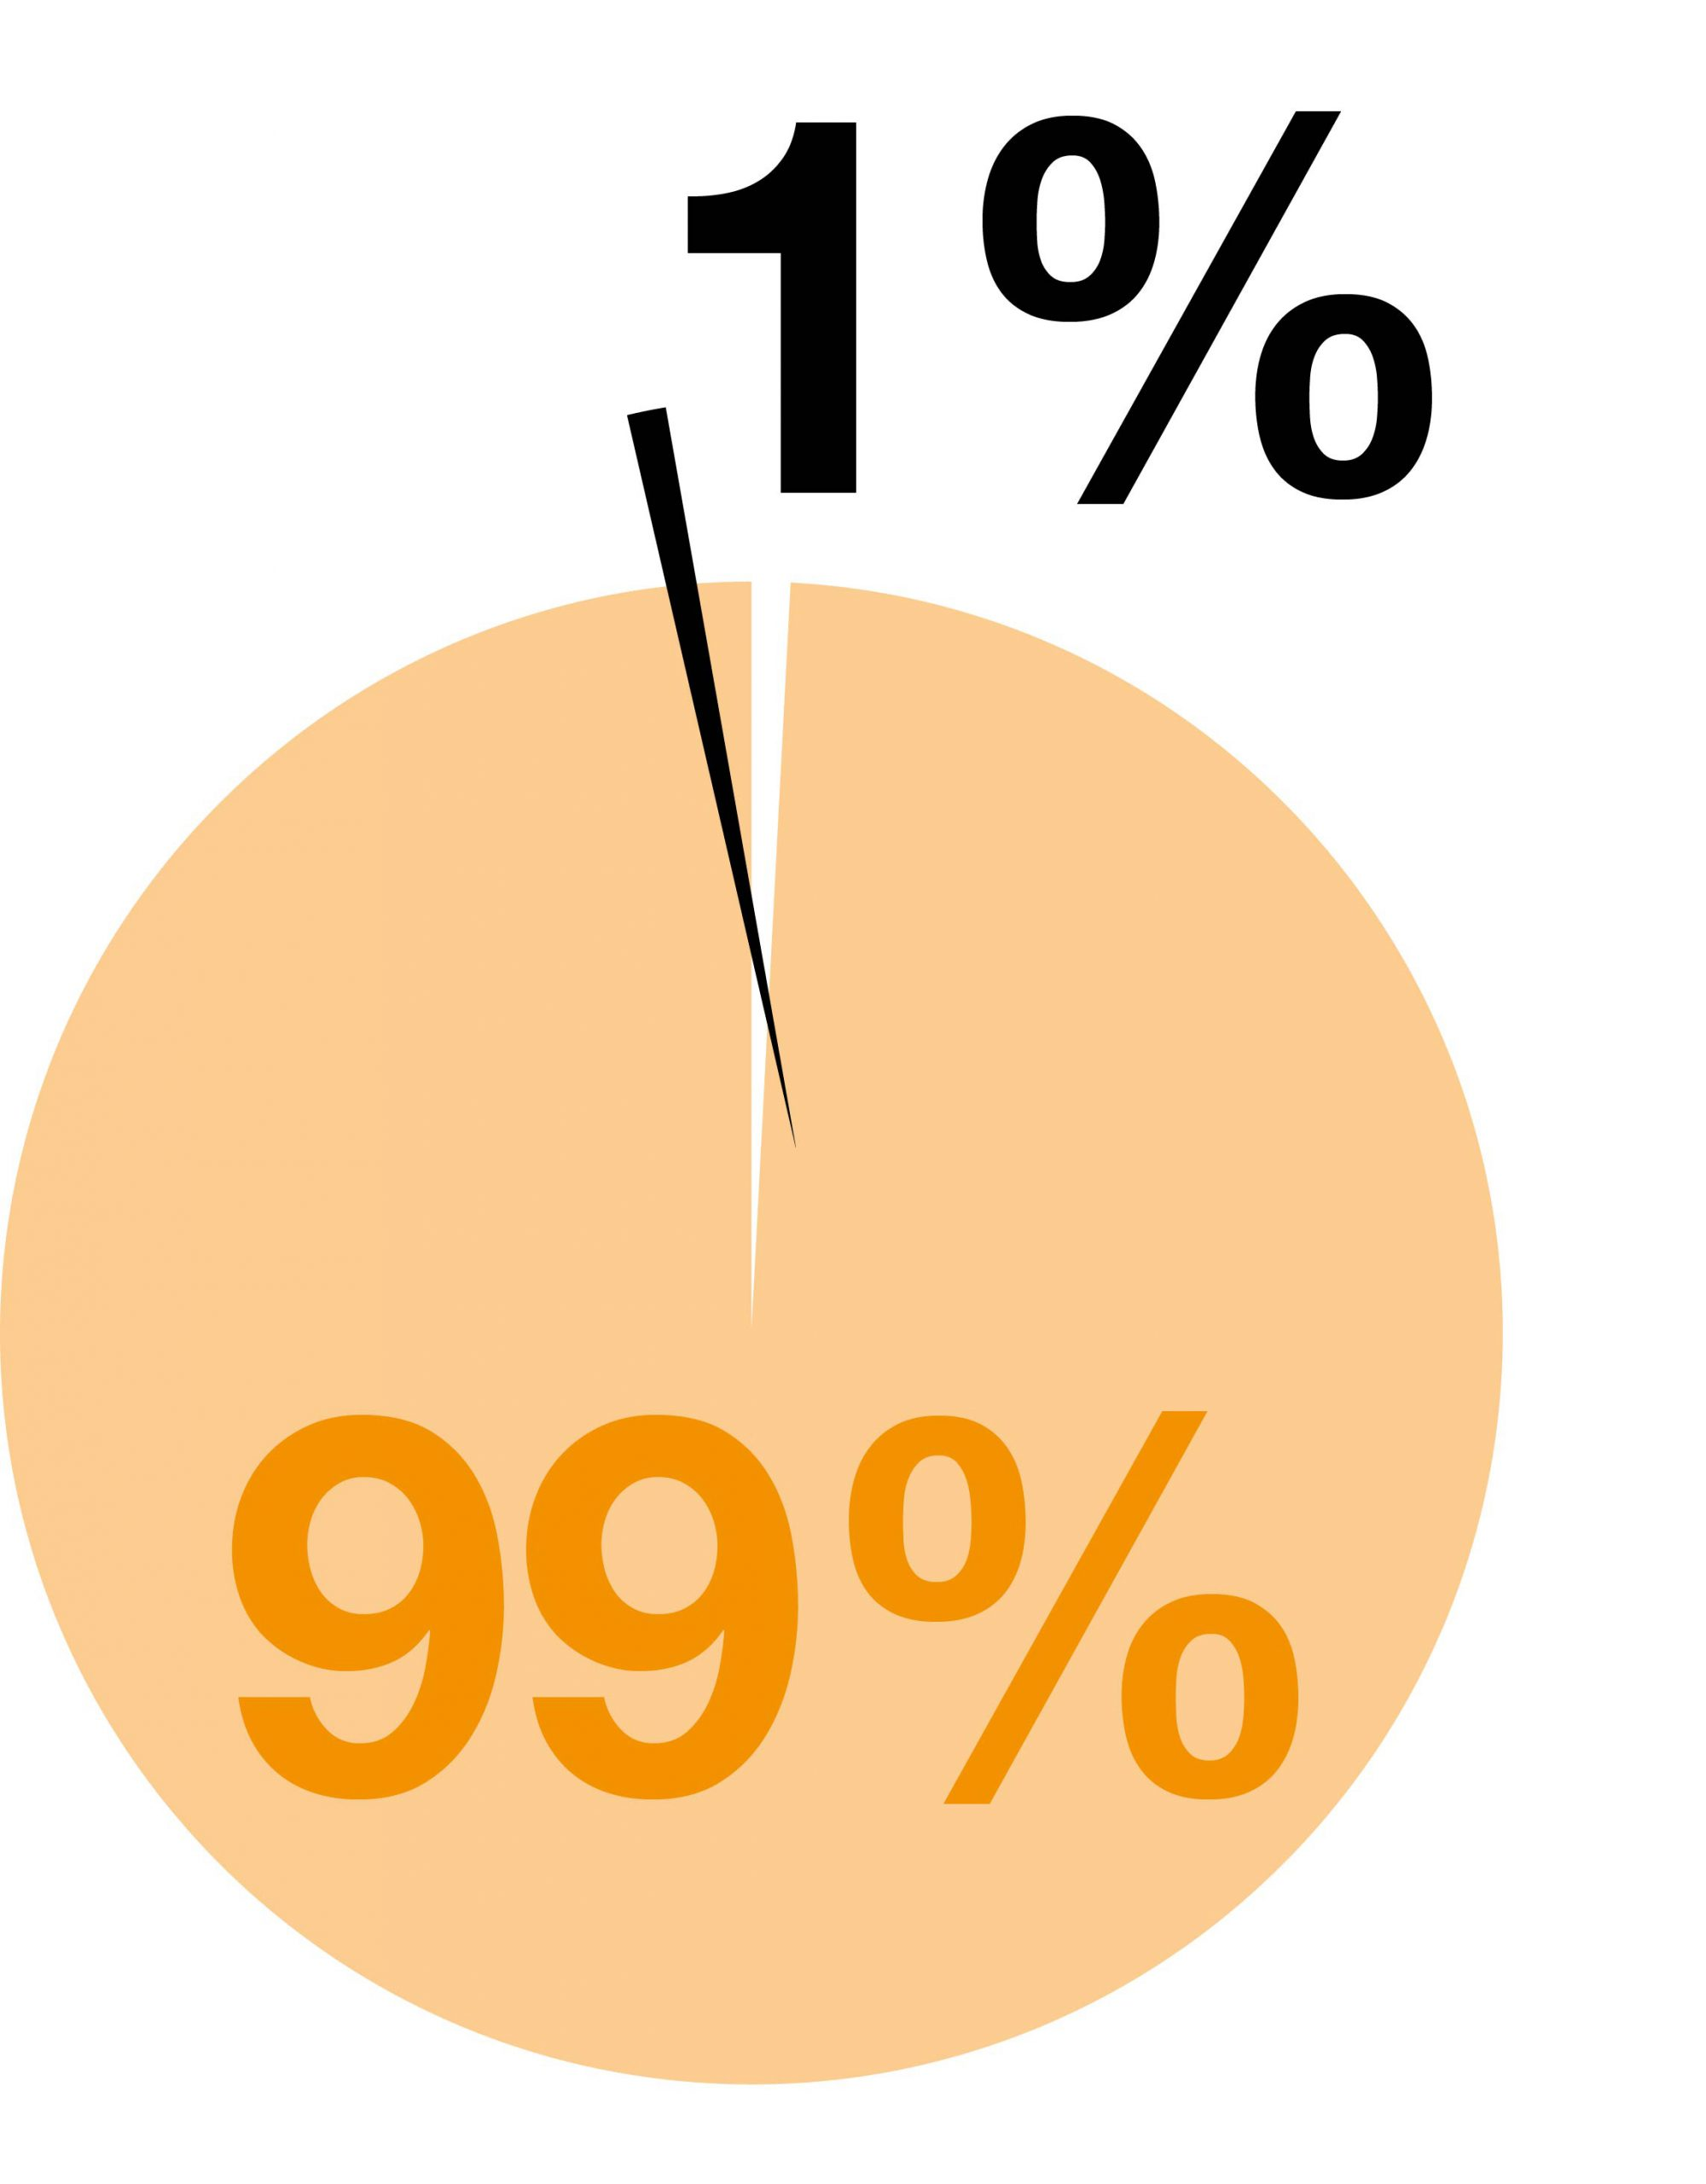 Pie chart showing 99% orange and 1% black. Illustration.